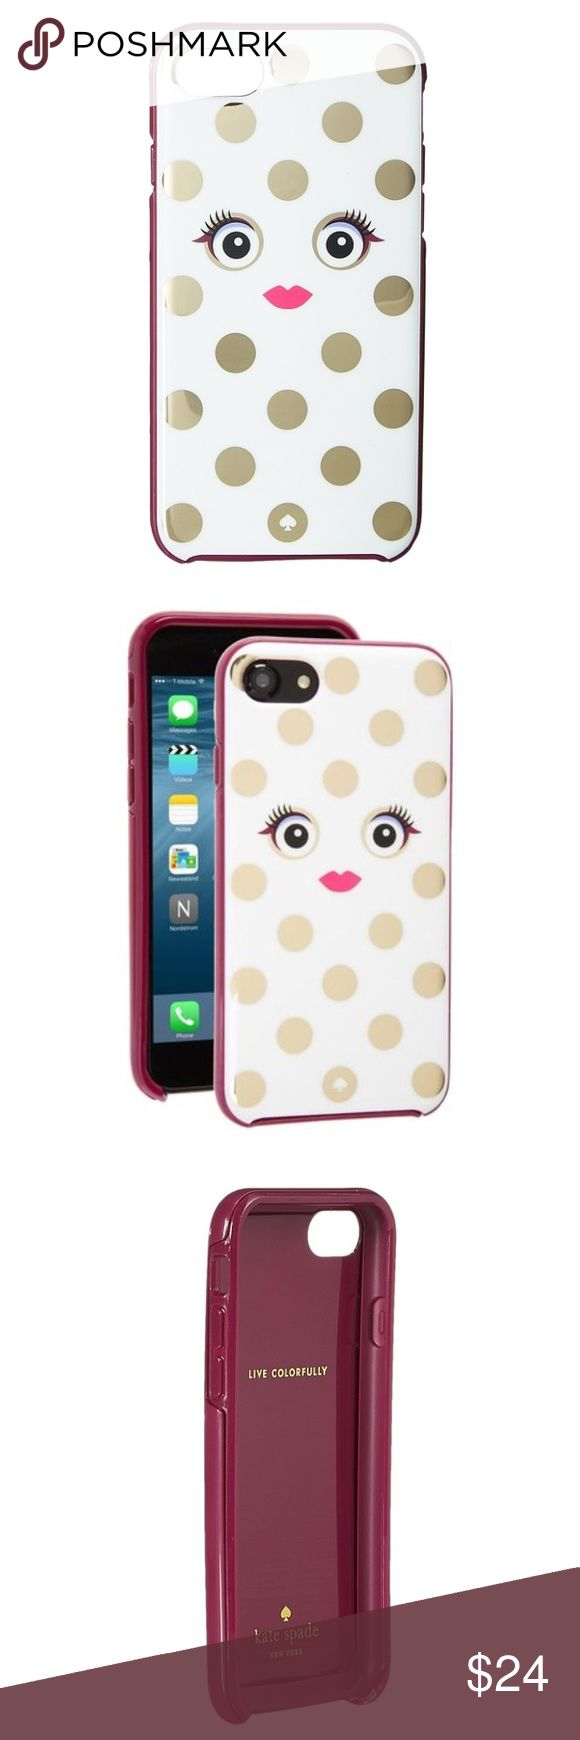 NWT - Kate Spade Framed Monster iPhone 7 Case Bring stylish and cute inner monster with you where ever you go carrying the Kate Spade New York® Framed Picture Dot Monster Phone Case. SKU: 8792691 Case made of resin. Protective cover compatible for use with smartphones like the iPhone® 7. Polka dot and face print at back. Live colorfully print inside. Direct access to all device features. kate spade Accessories Phone Cases